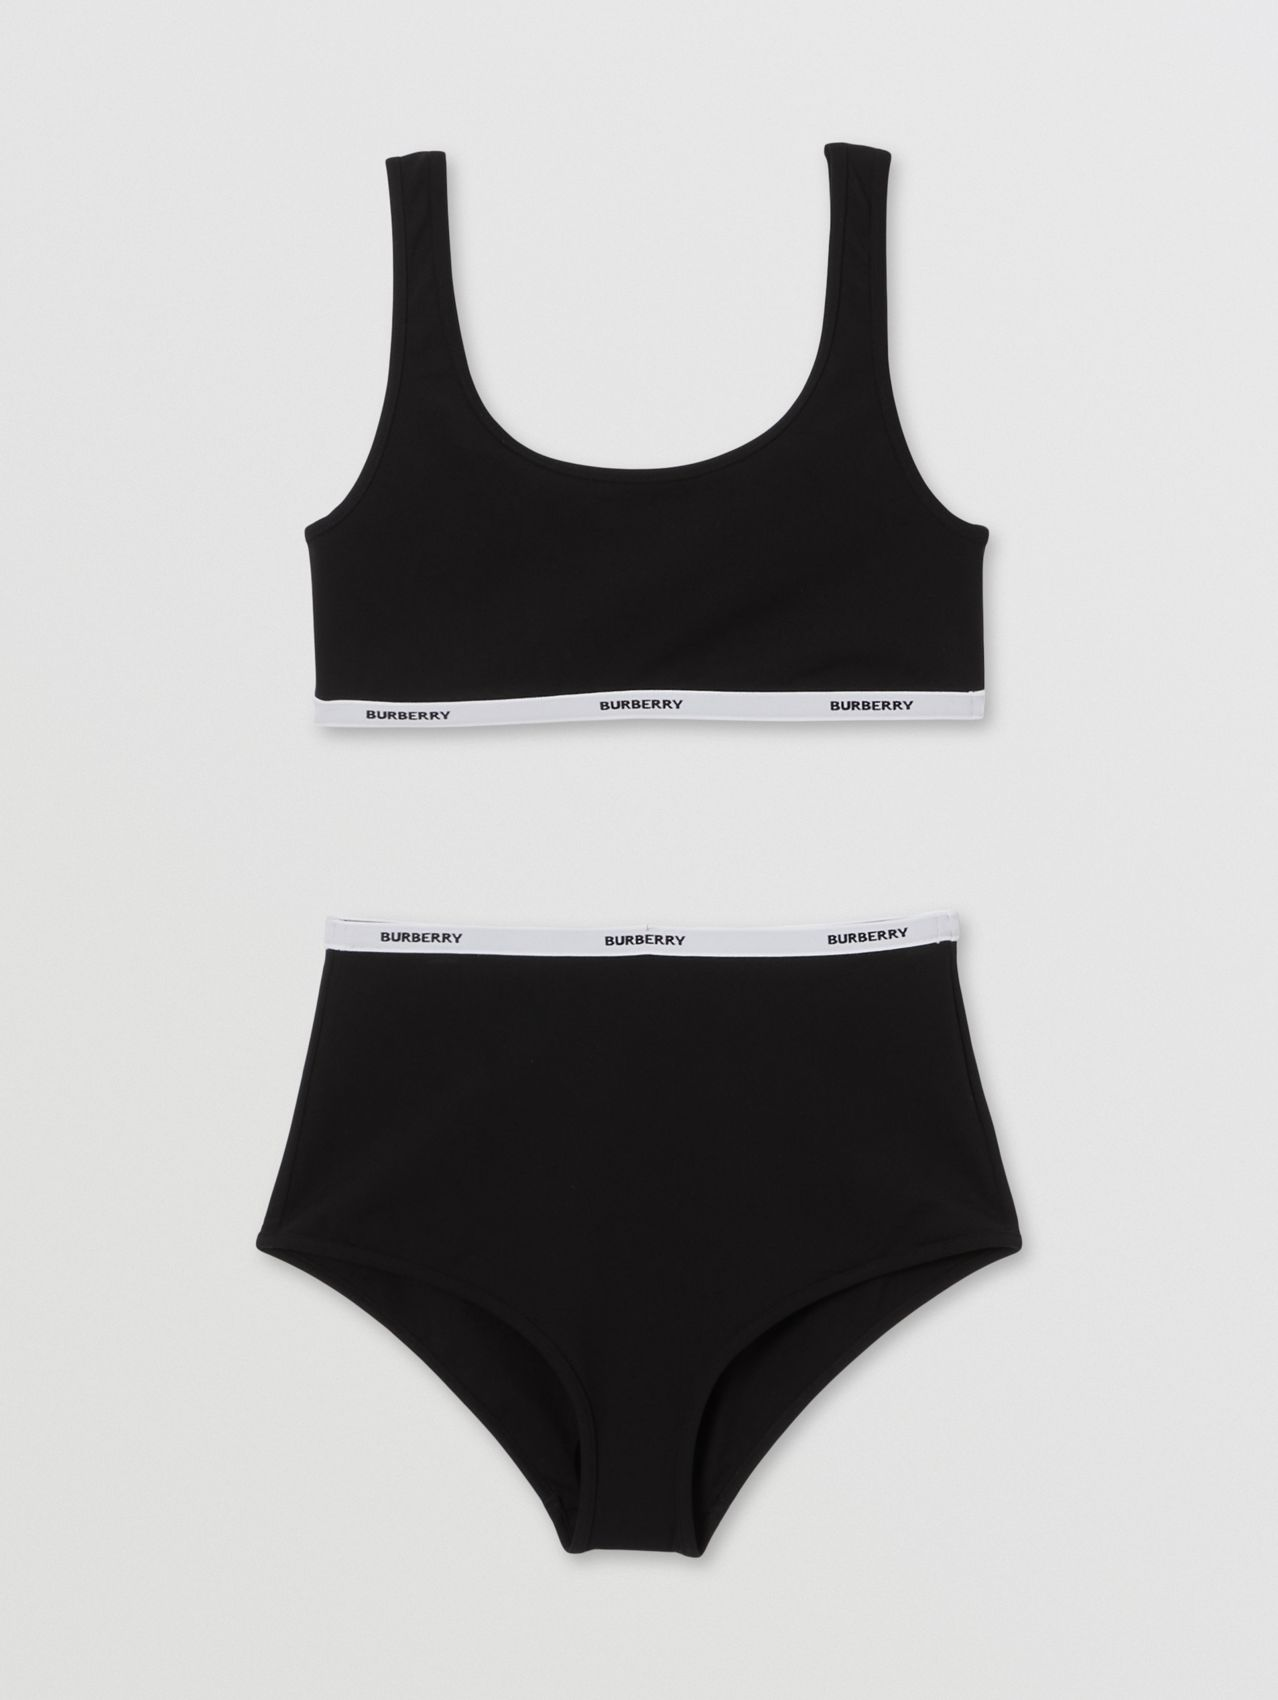 Logo Tape Bio-based Stretch Nylon Bikini in Black